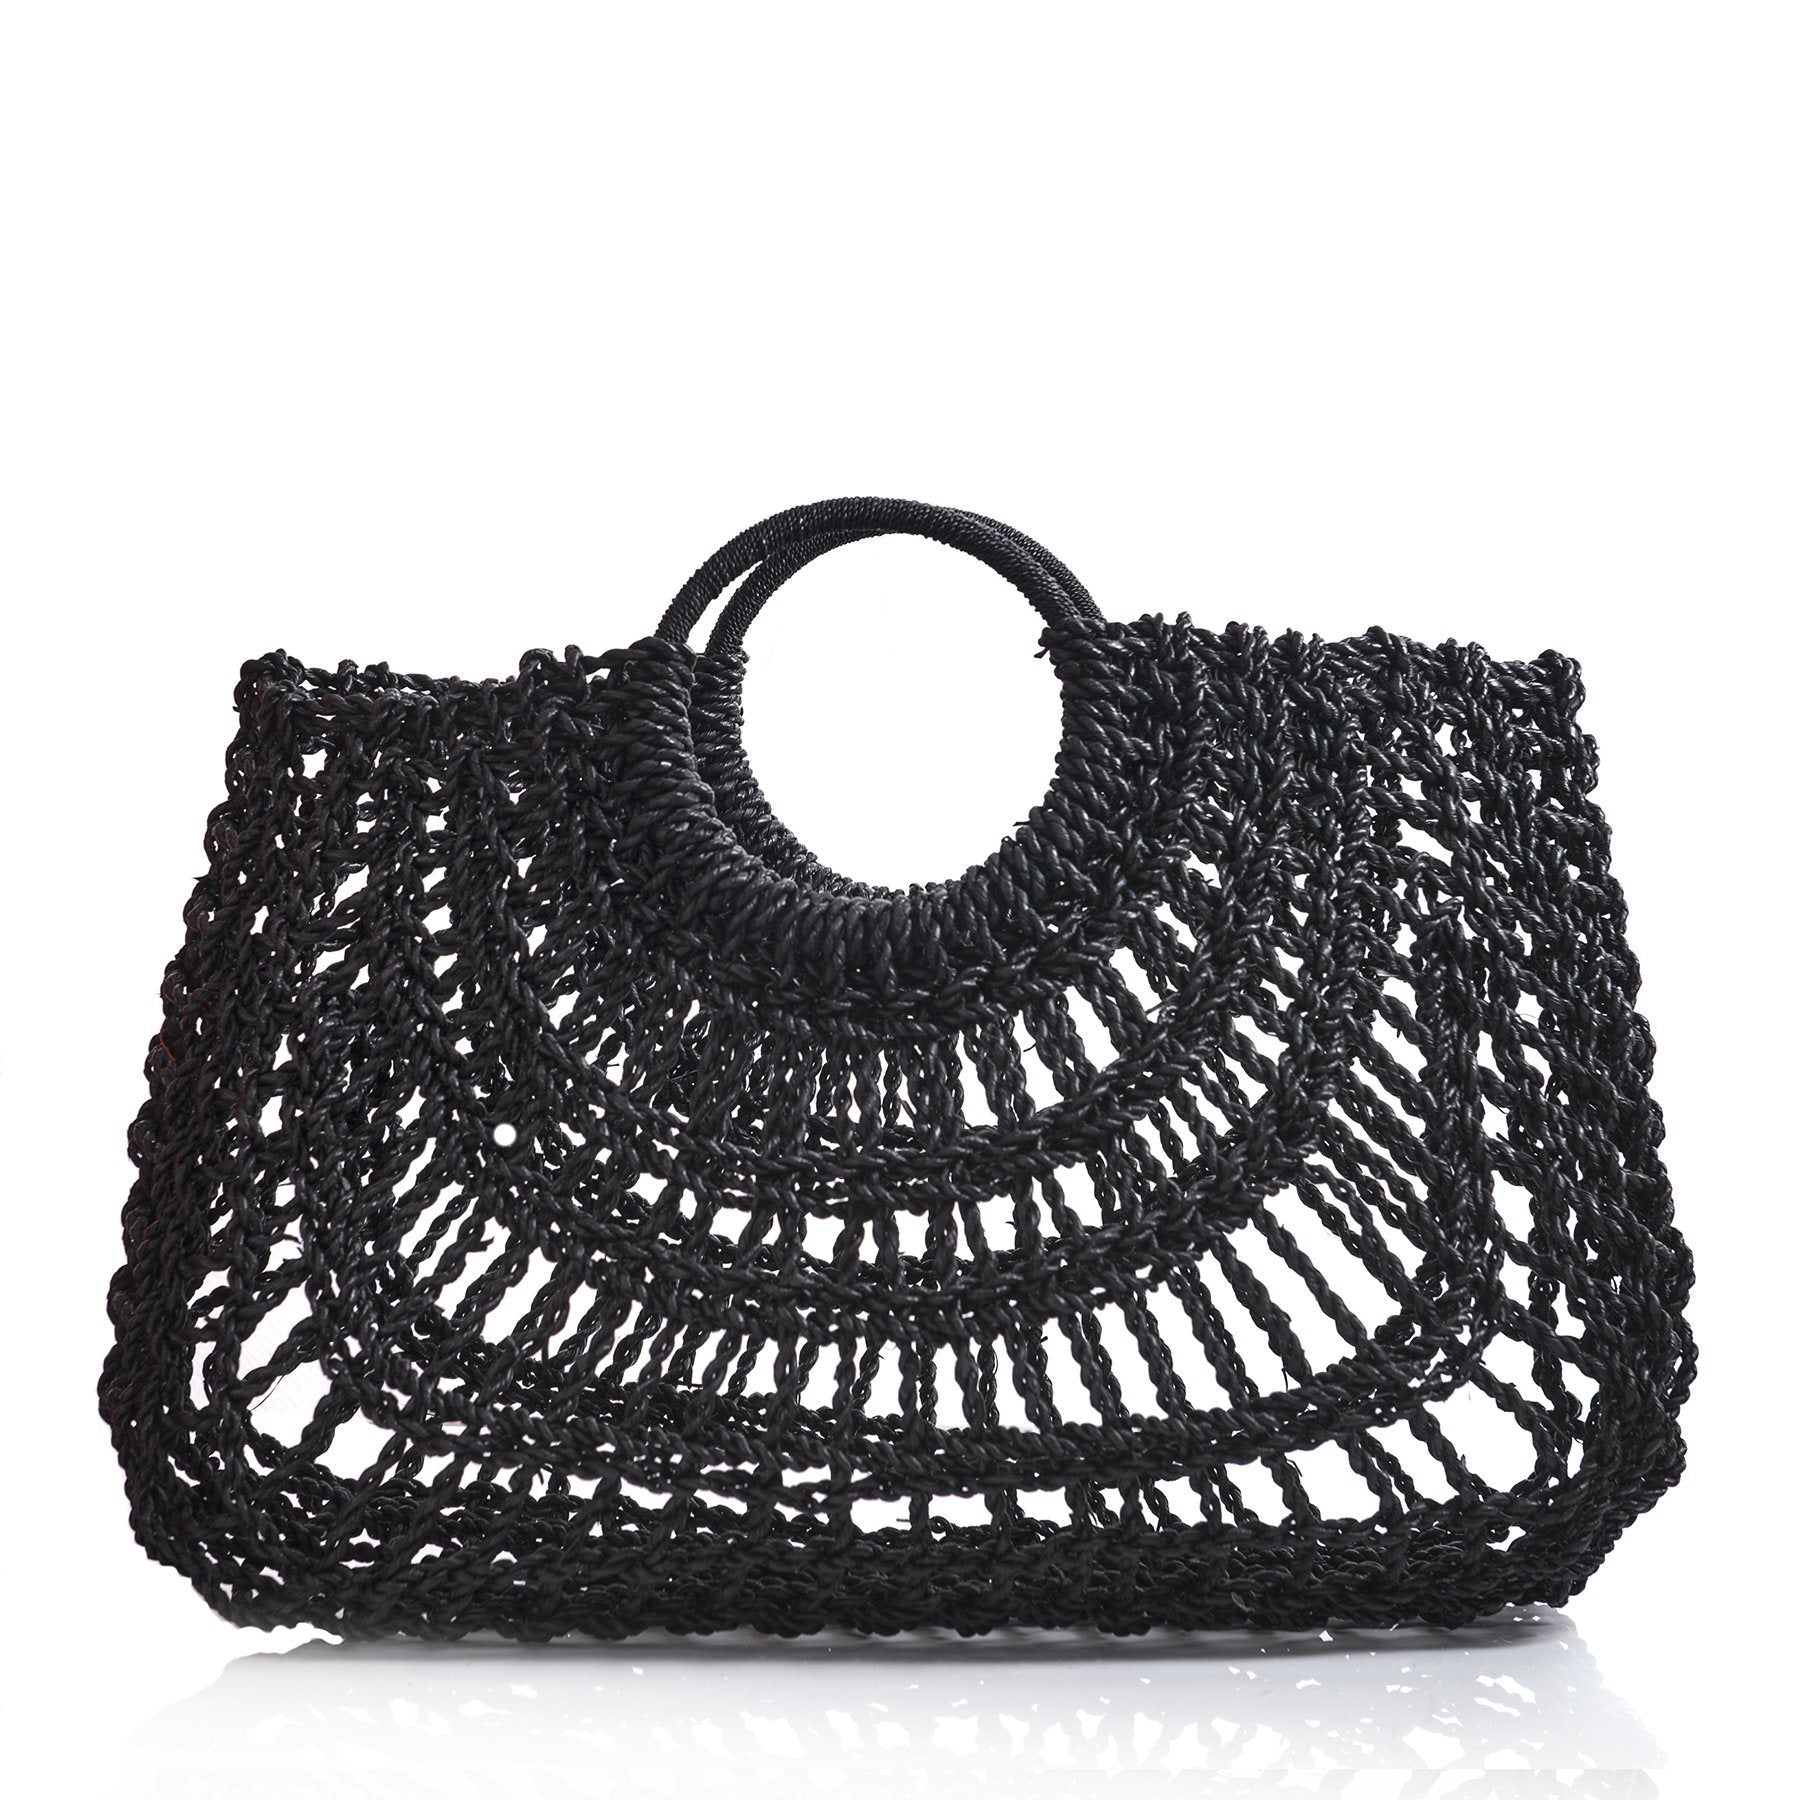 Audrey bag - black